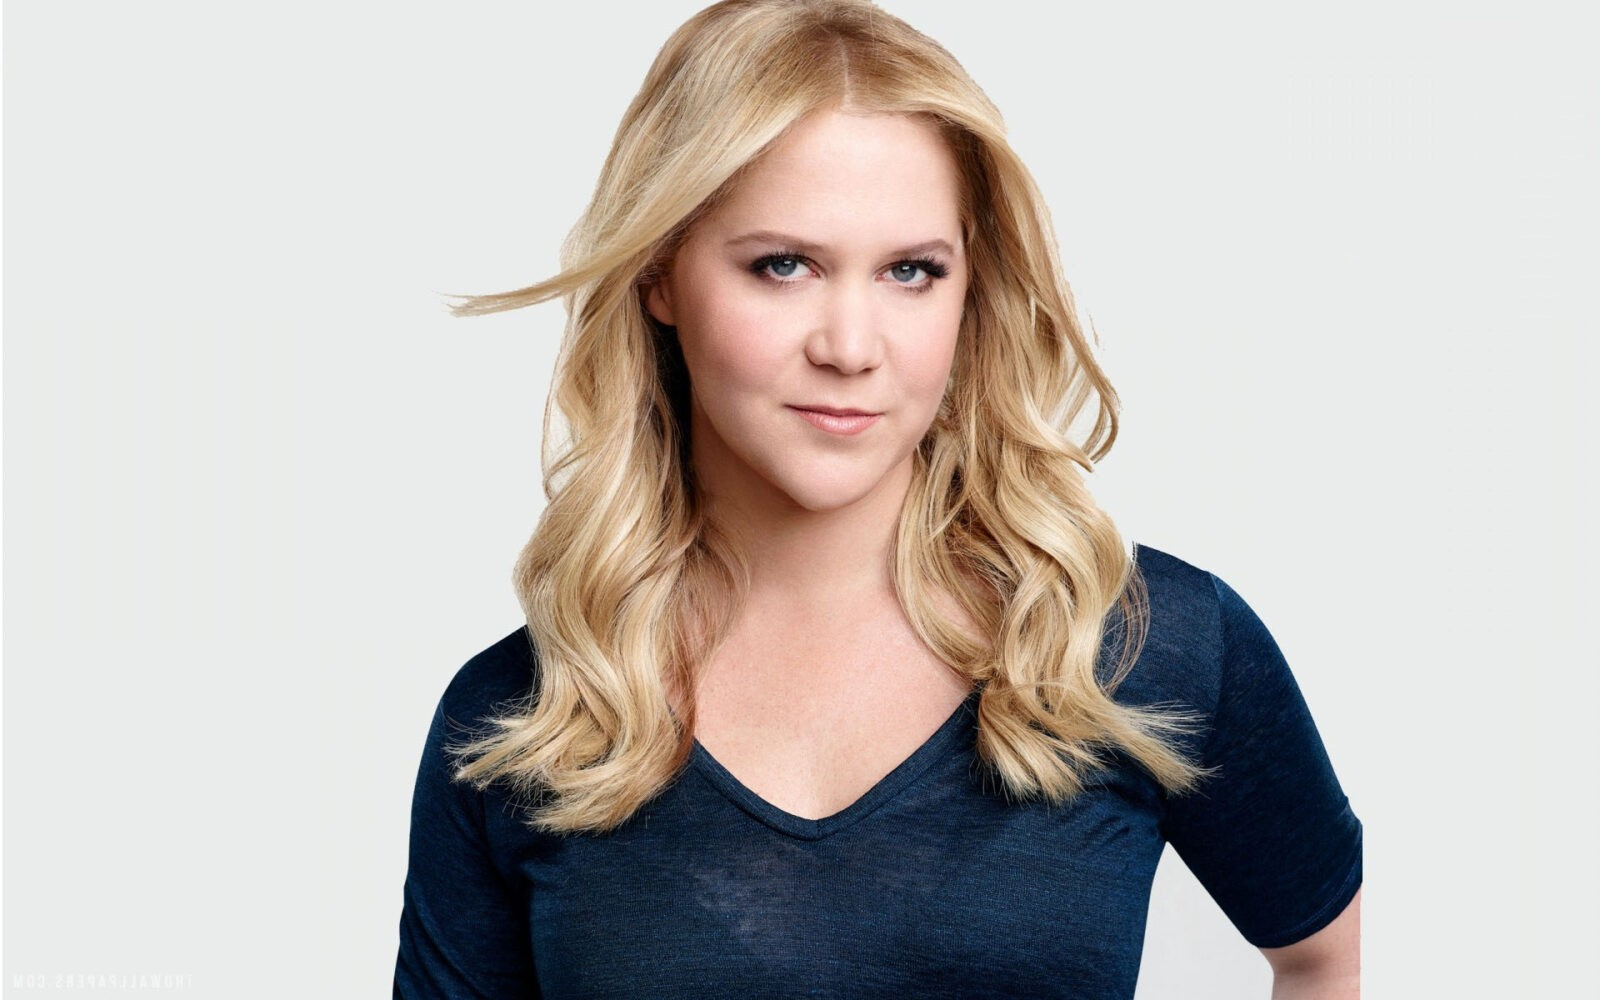 16+ Amy Schumer wallpapers HD Download: http://wallpapersqq.net/amy-schumer.html